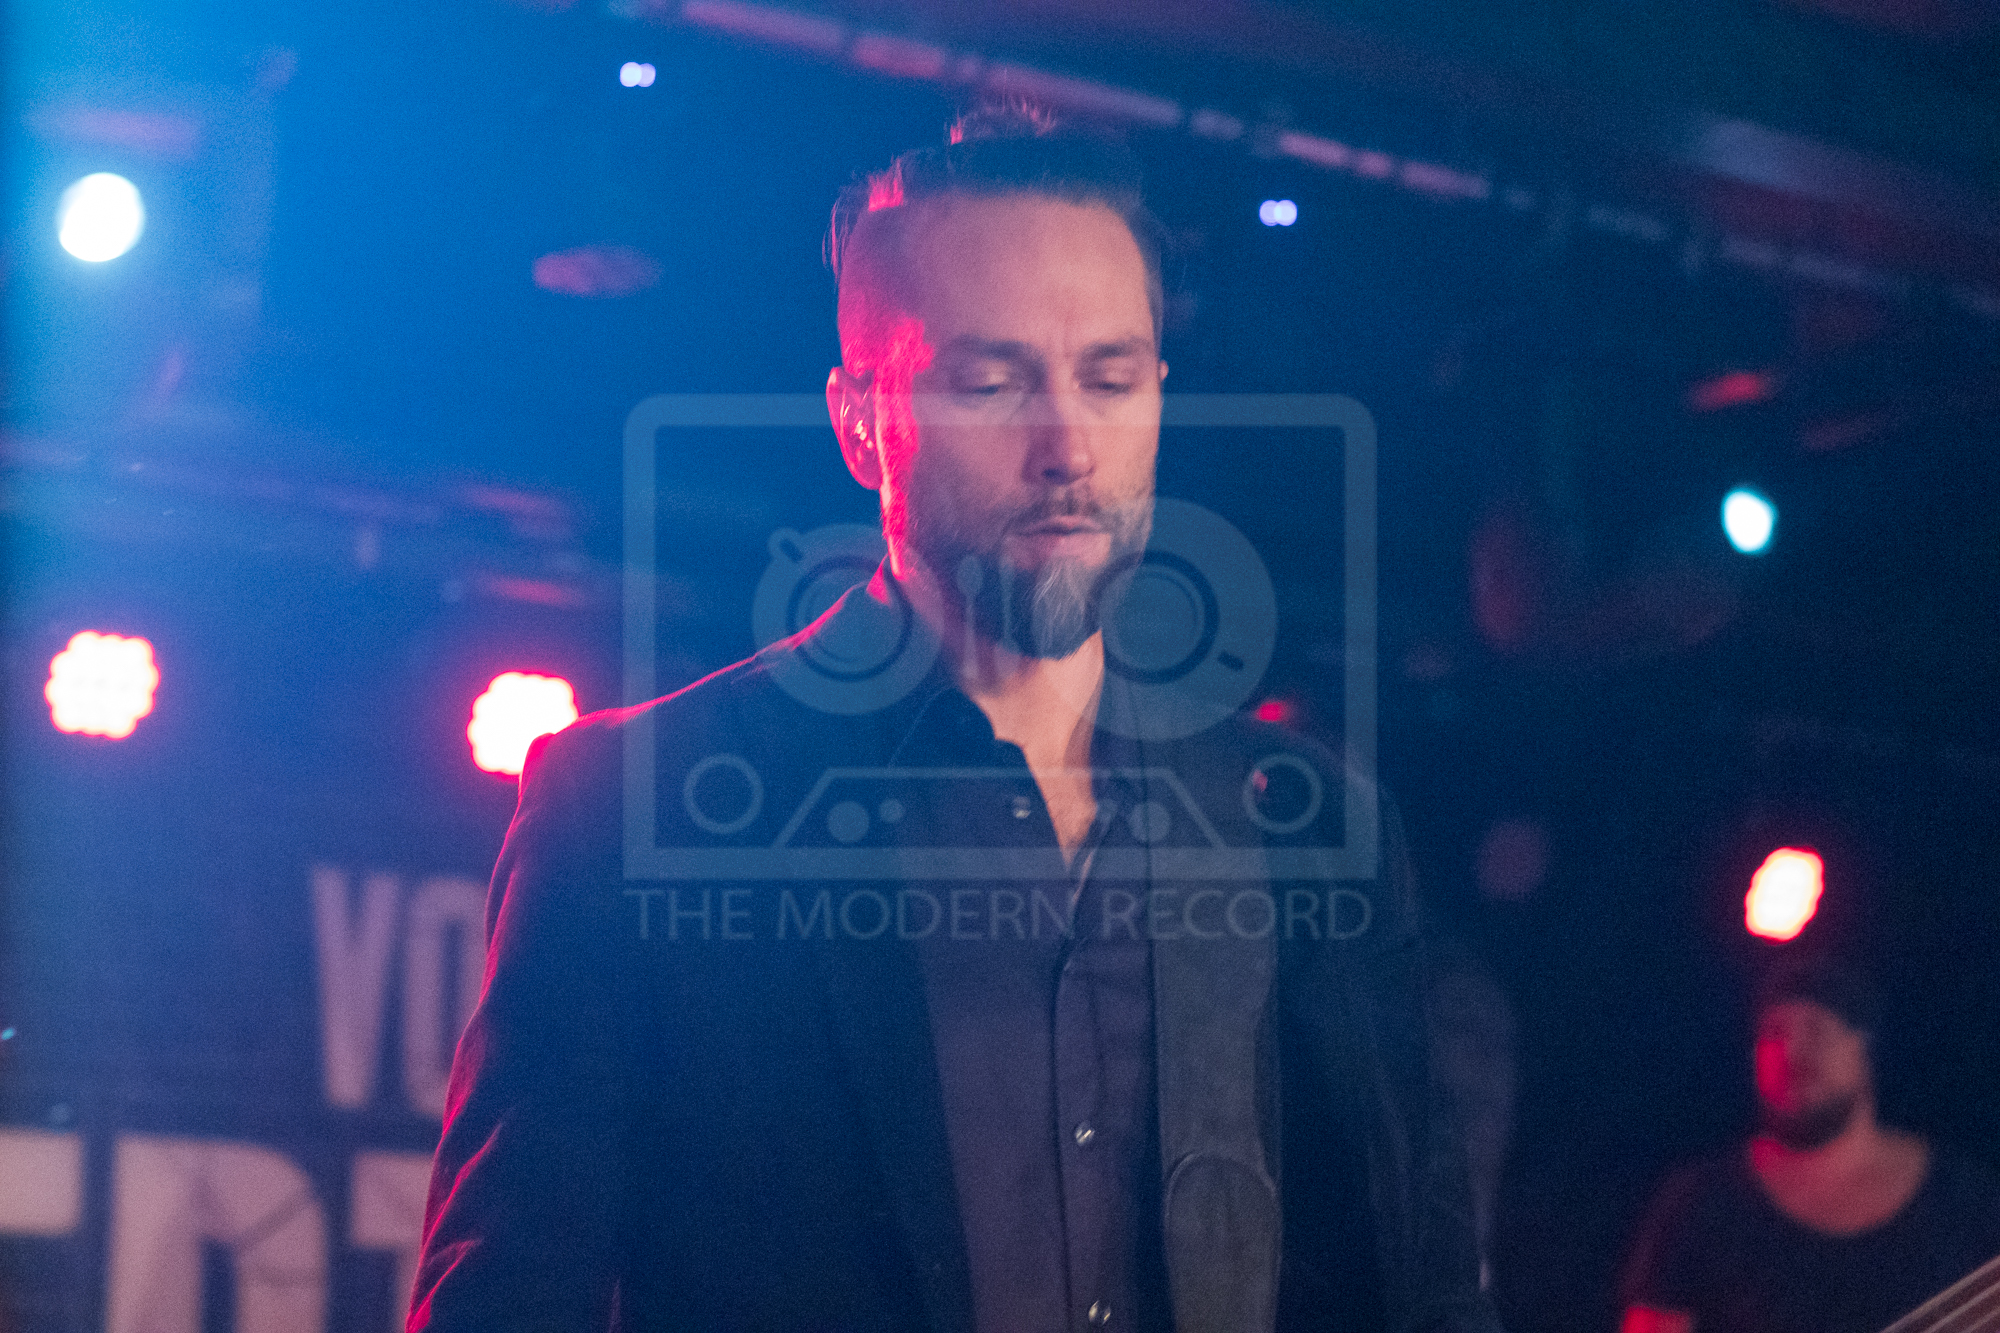 3 - von hertzen brothers - Newcastle University SU, Newcastle - 08-12-18 Picture by Will Gorman Photo.JPG